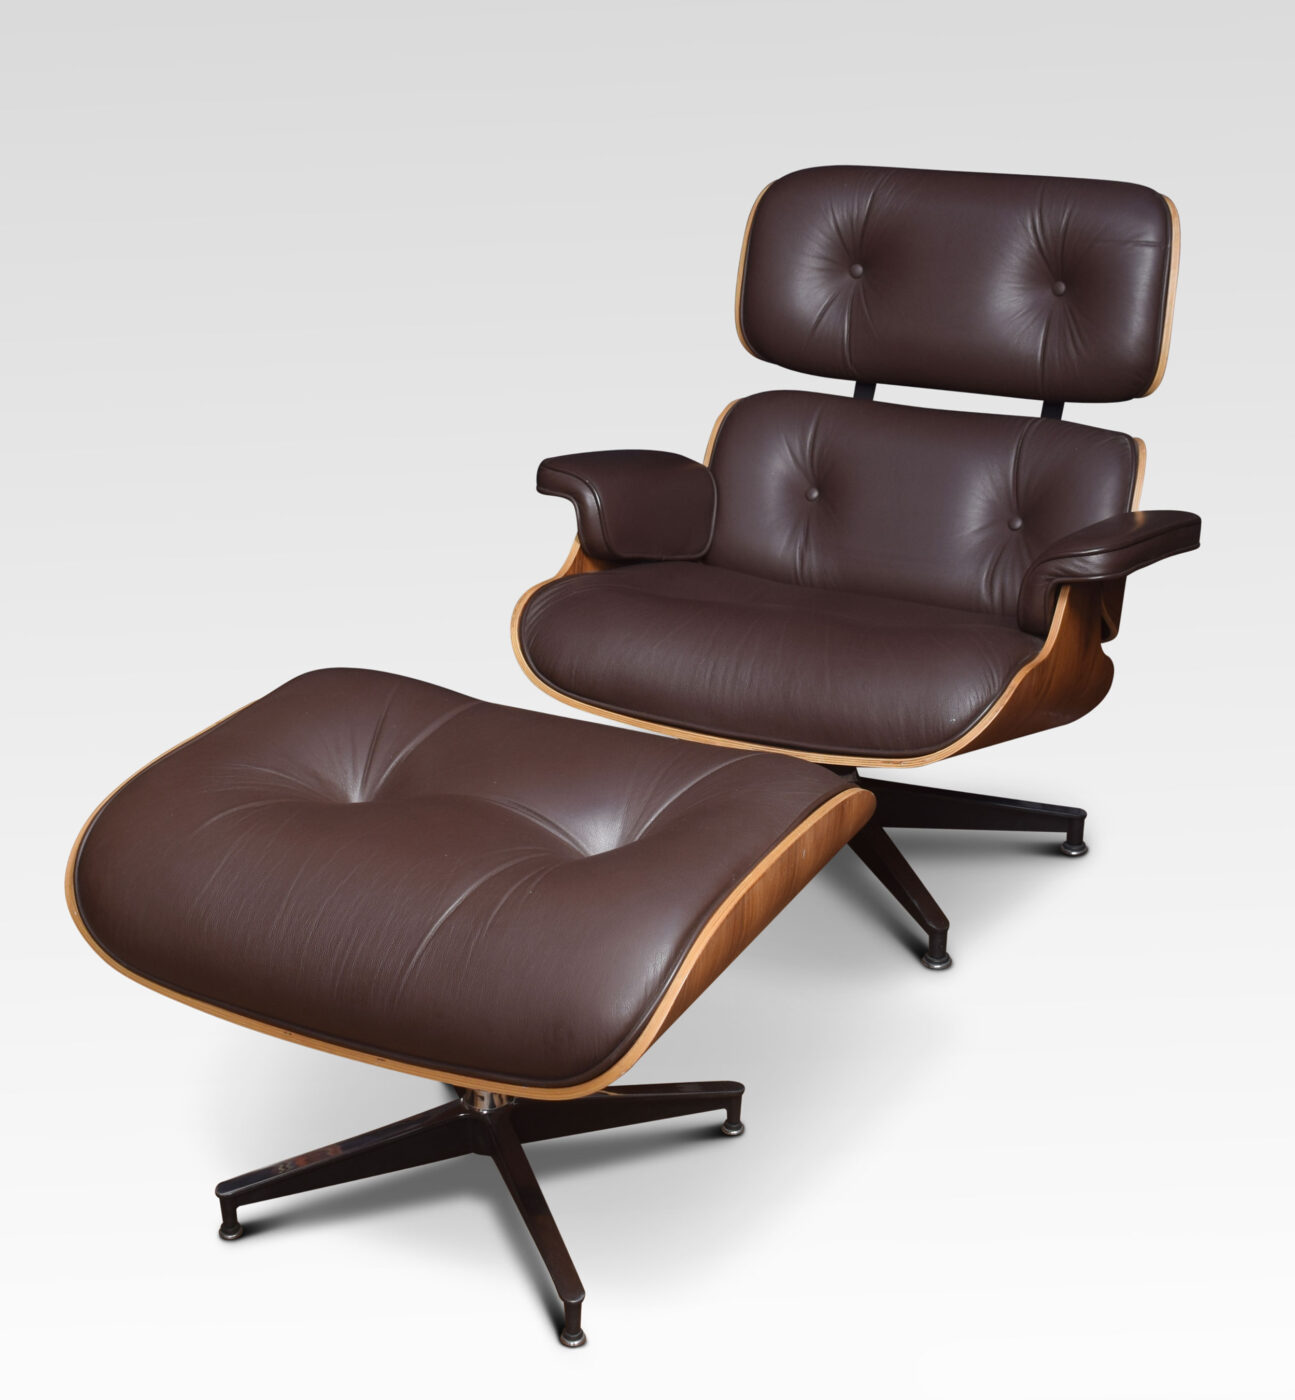 Charles Eames Lounge Chair Lounge Chair And Stool After Charles Eames – Shacklady's Antiques